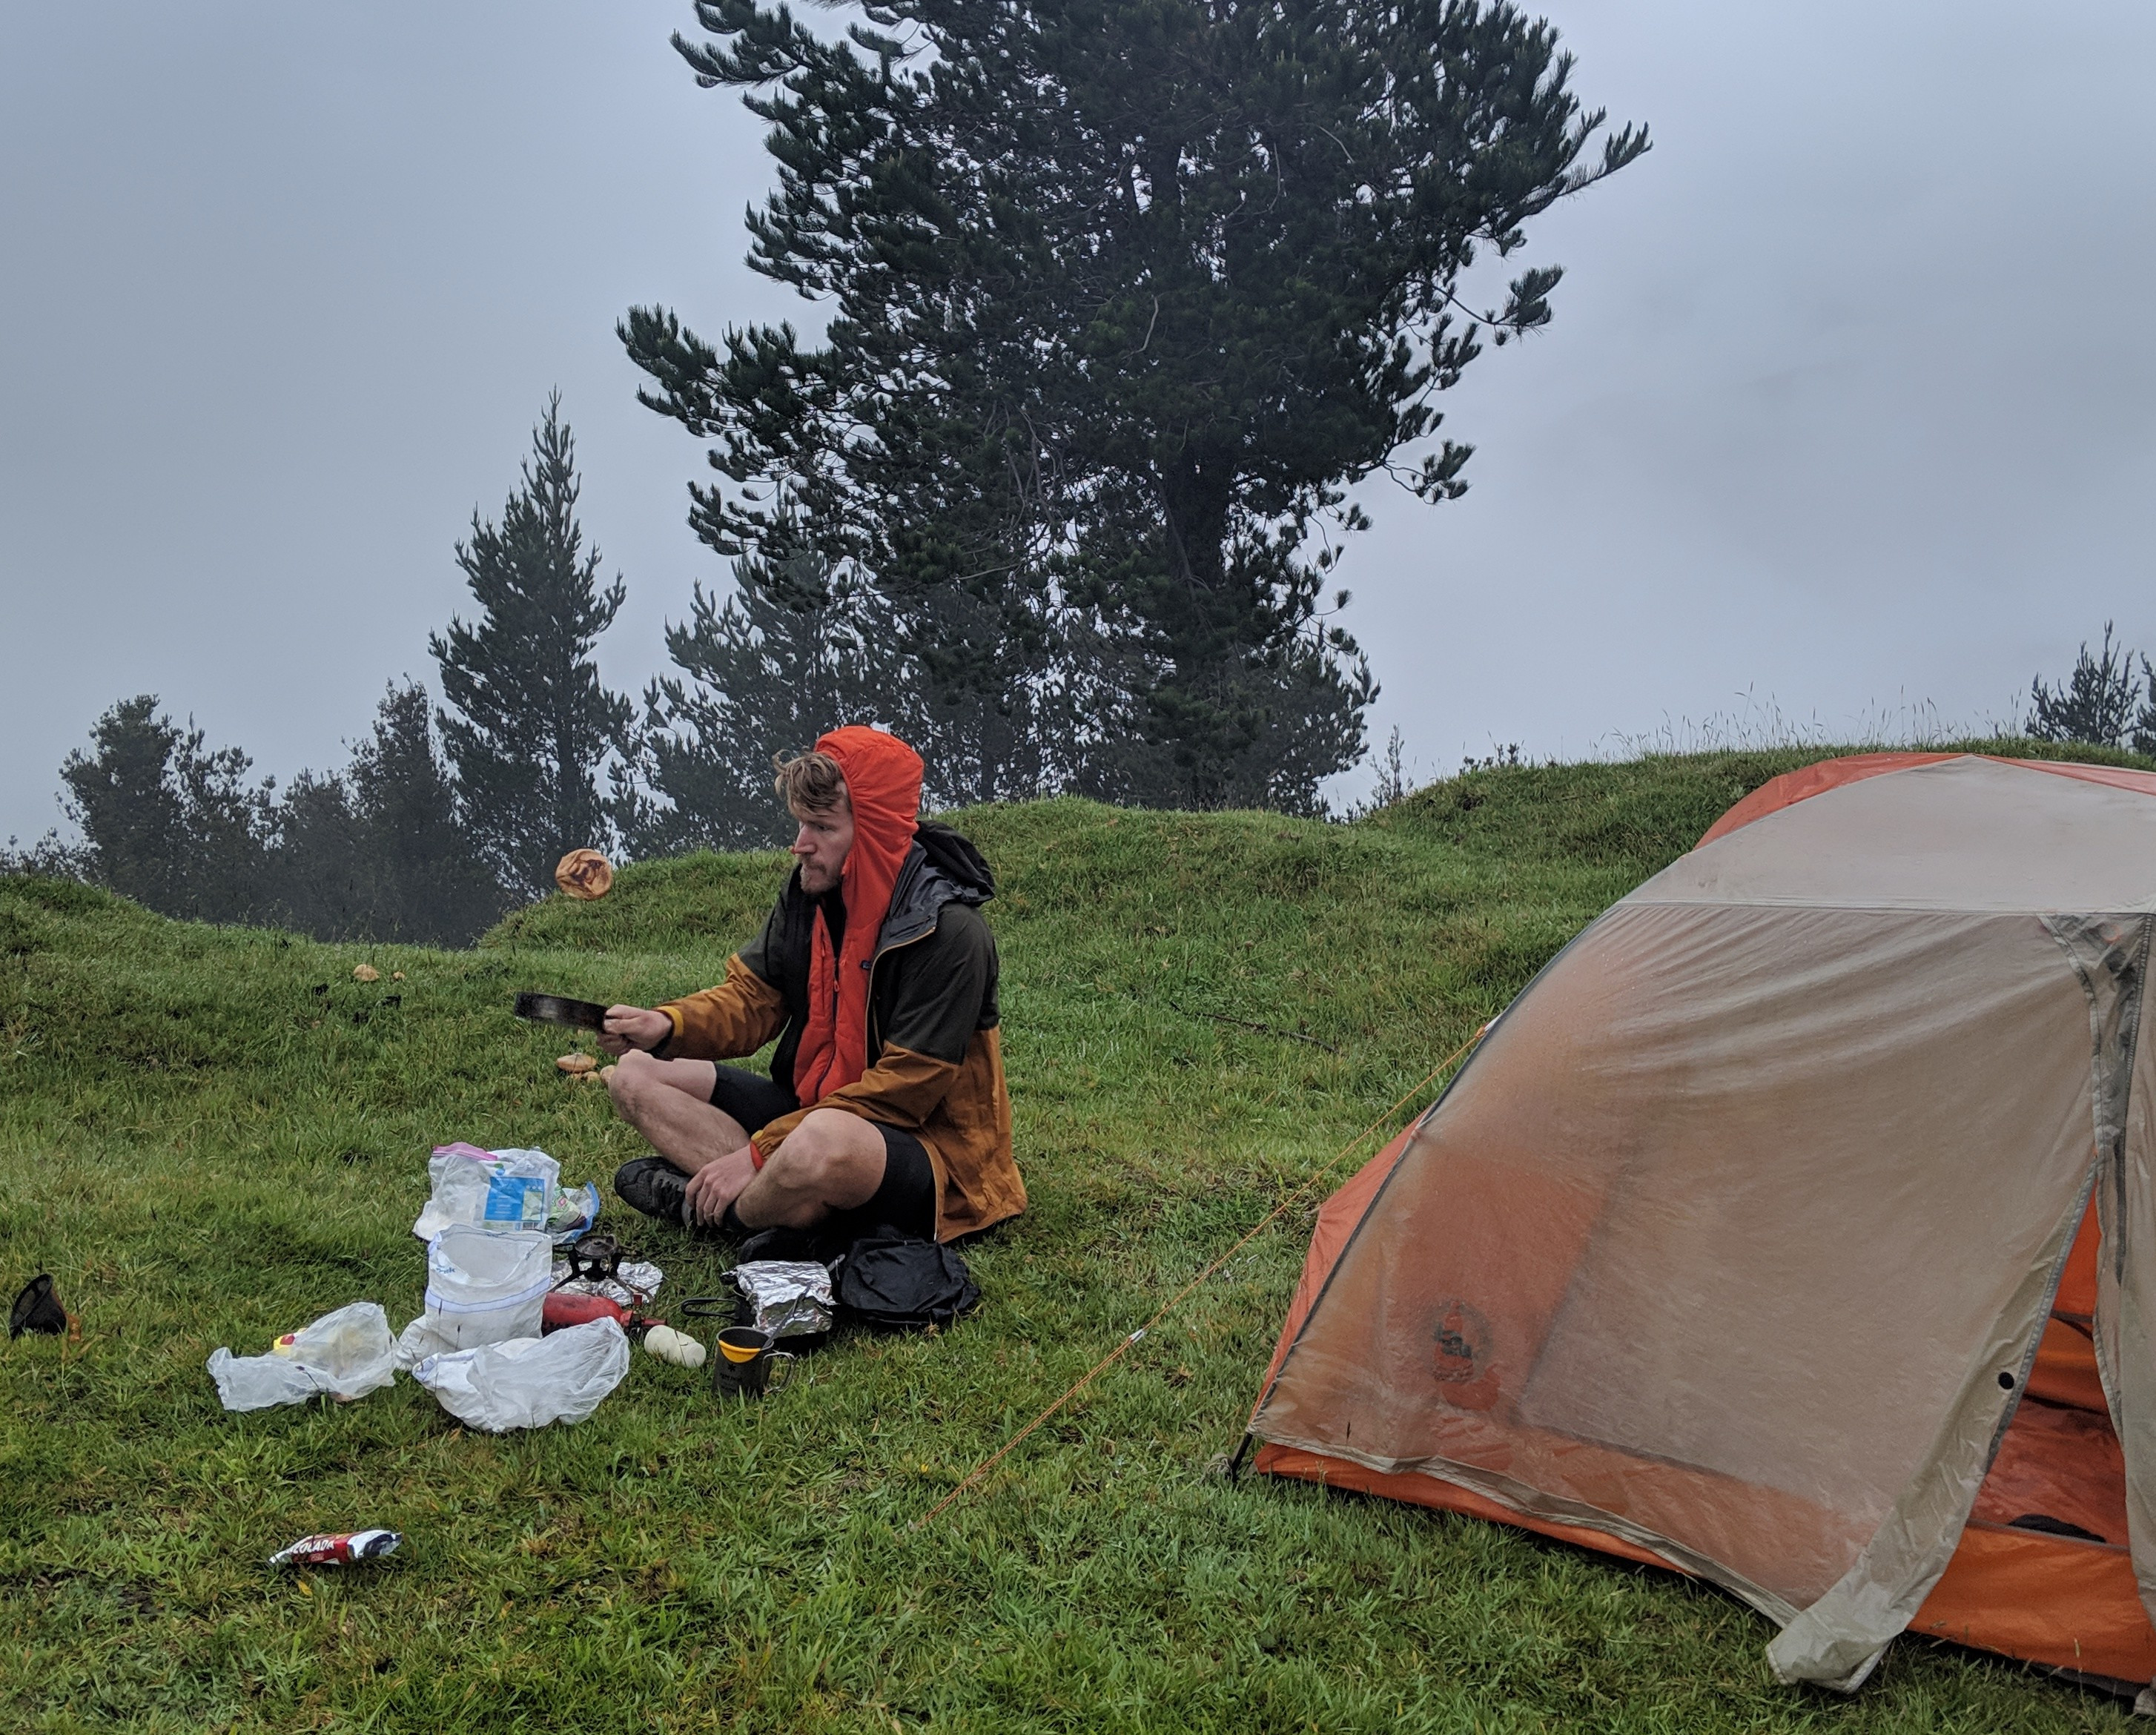 Mid-trip Gear Review Part 1 - Clothing and Camping